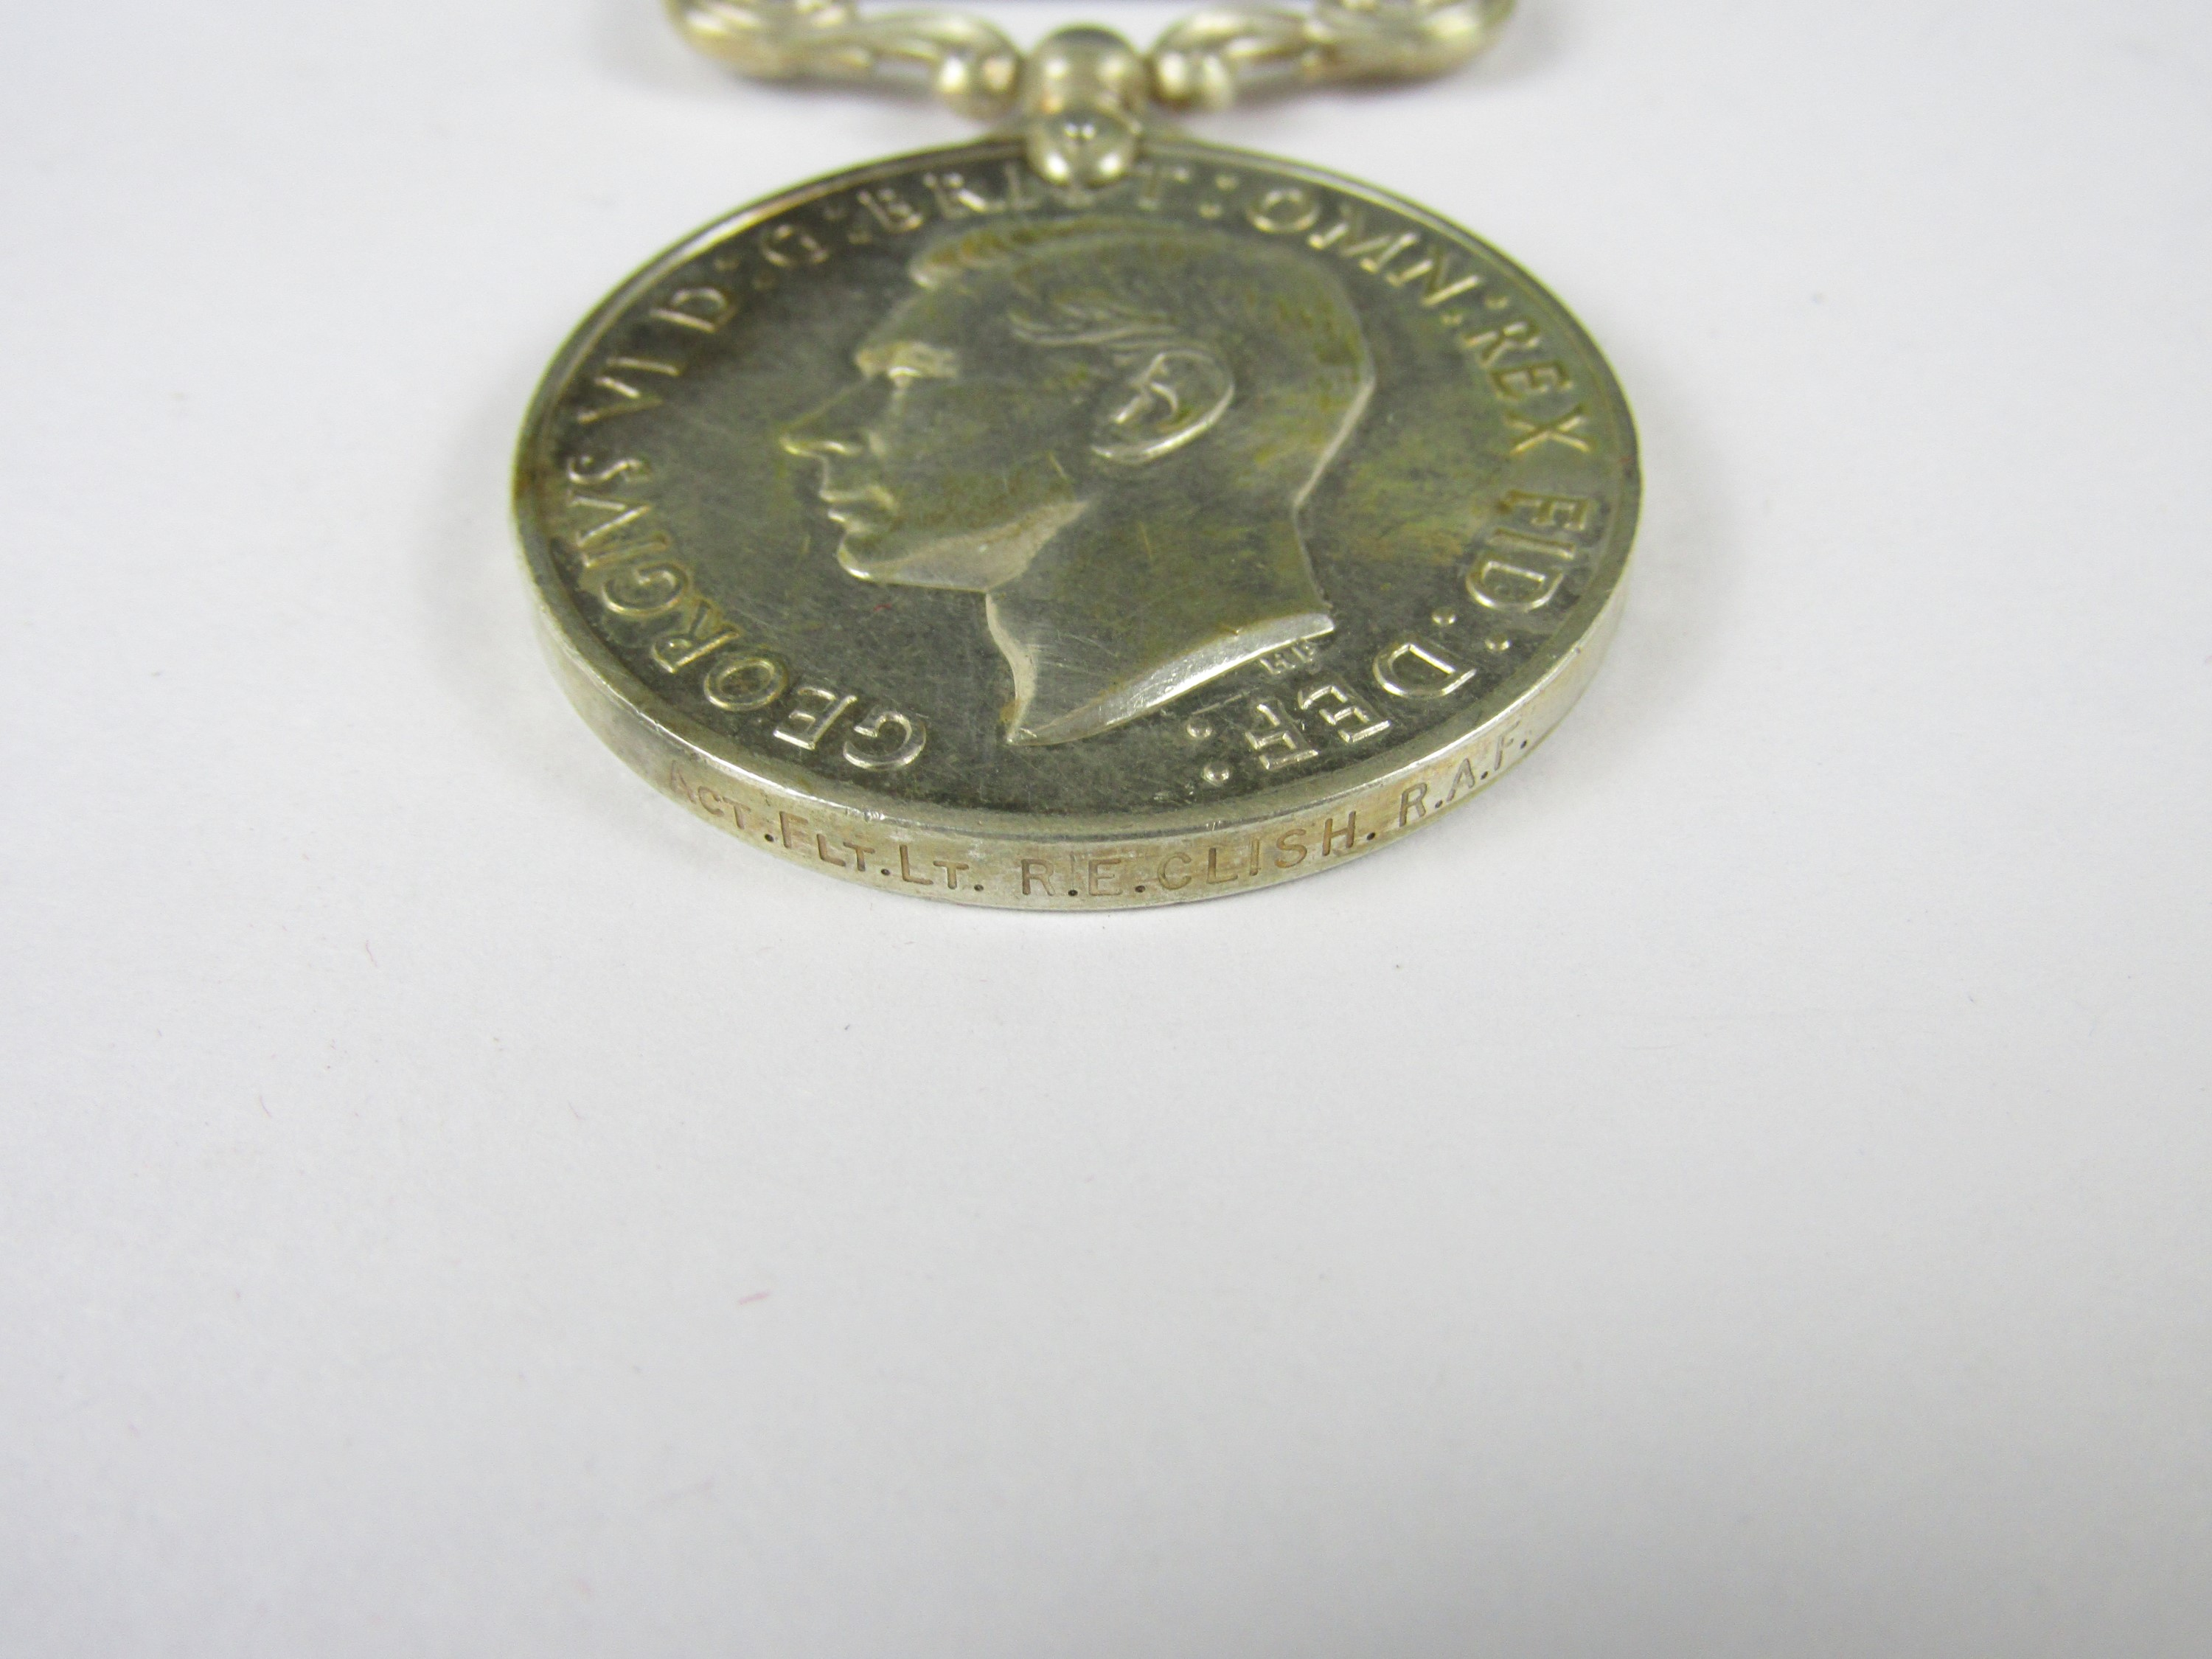 Lot 7 - A George VI RAF Long Service and Good Conduct Medal to [54398] ACT FLT LT R E Clish, RAF